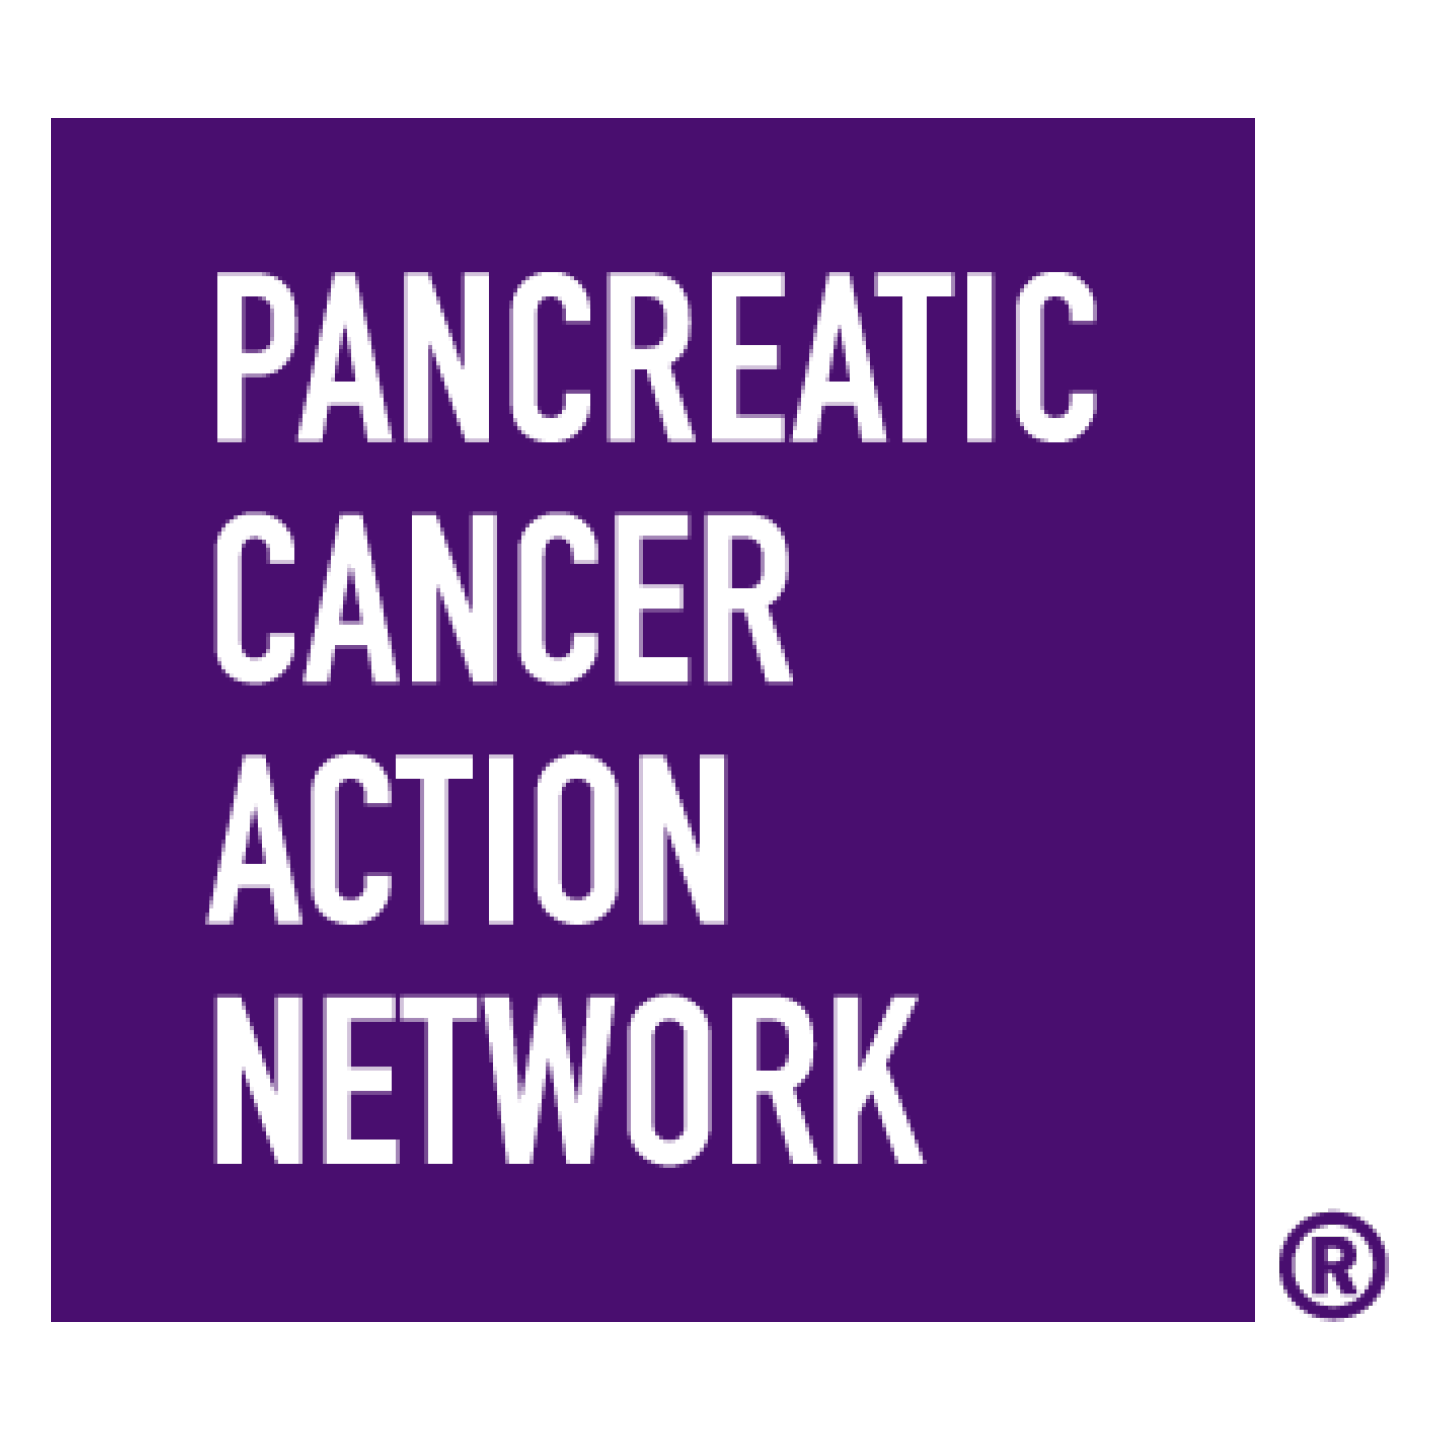 Pancreatice Cancer Action Network